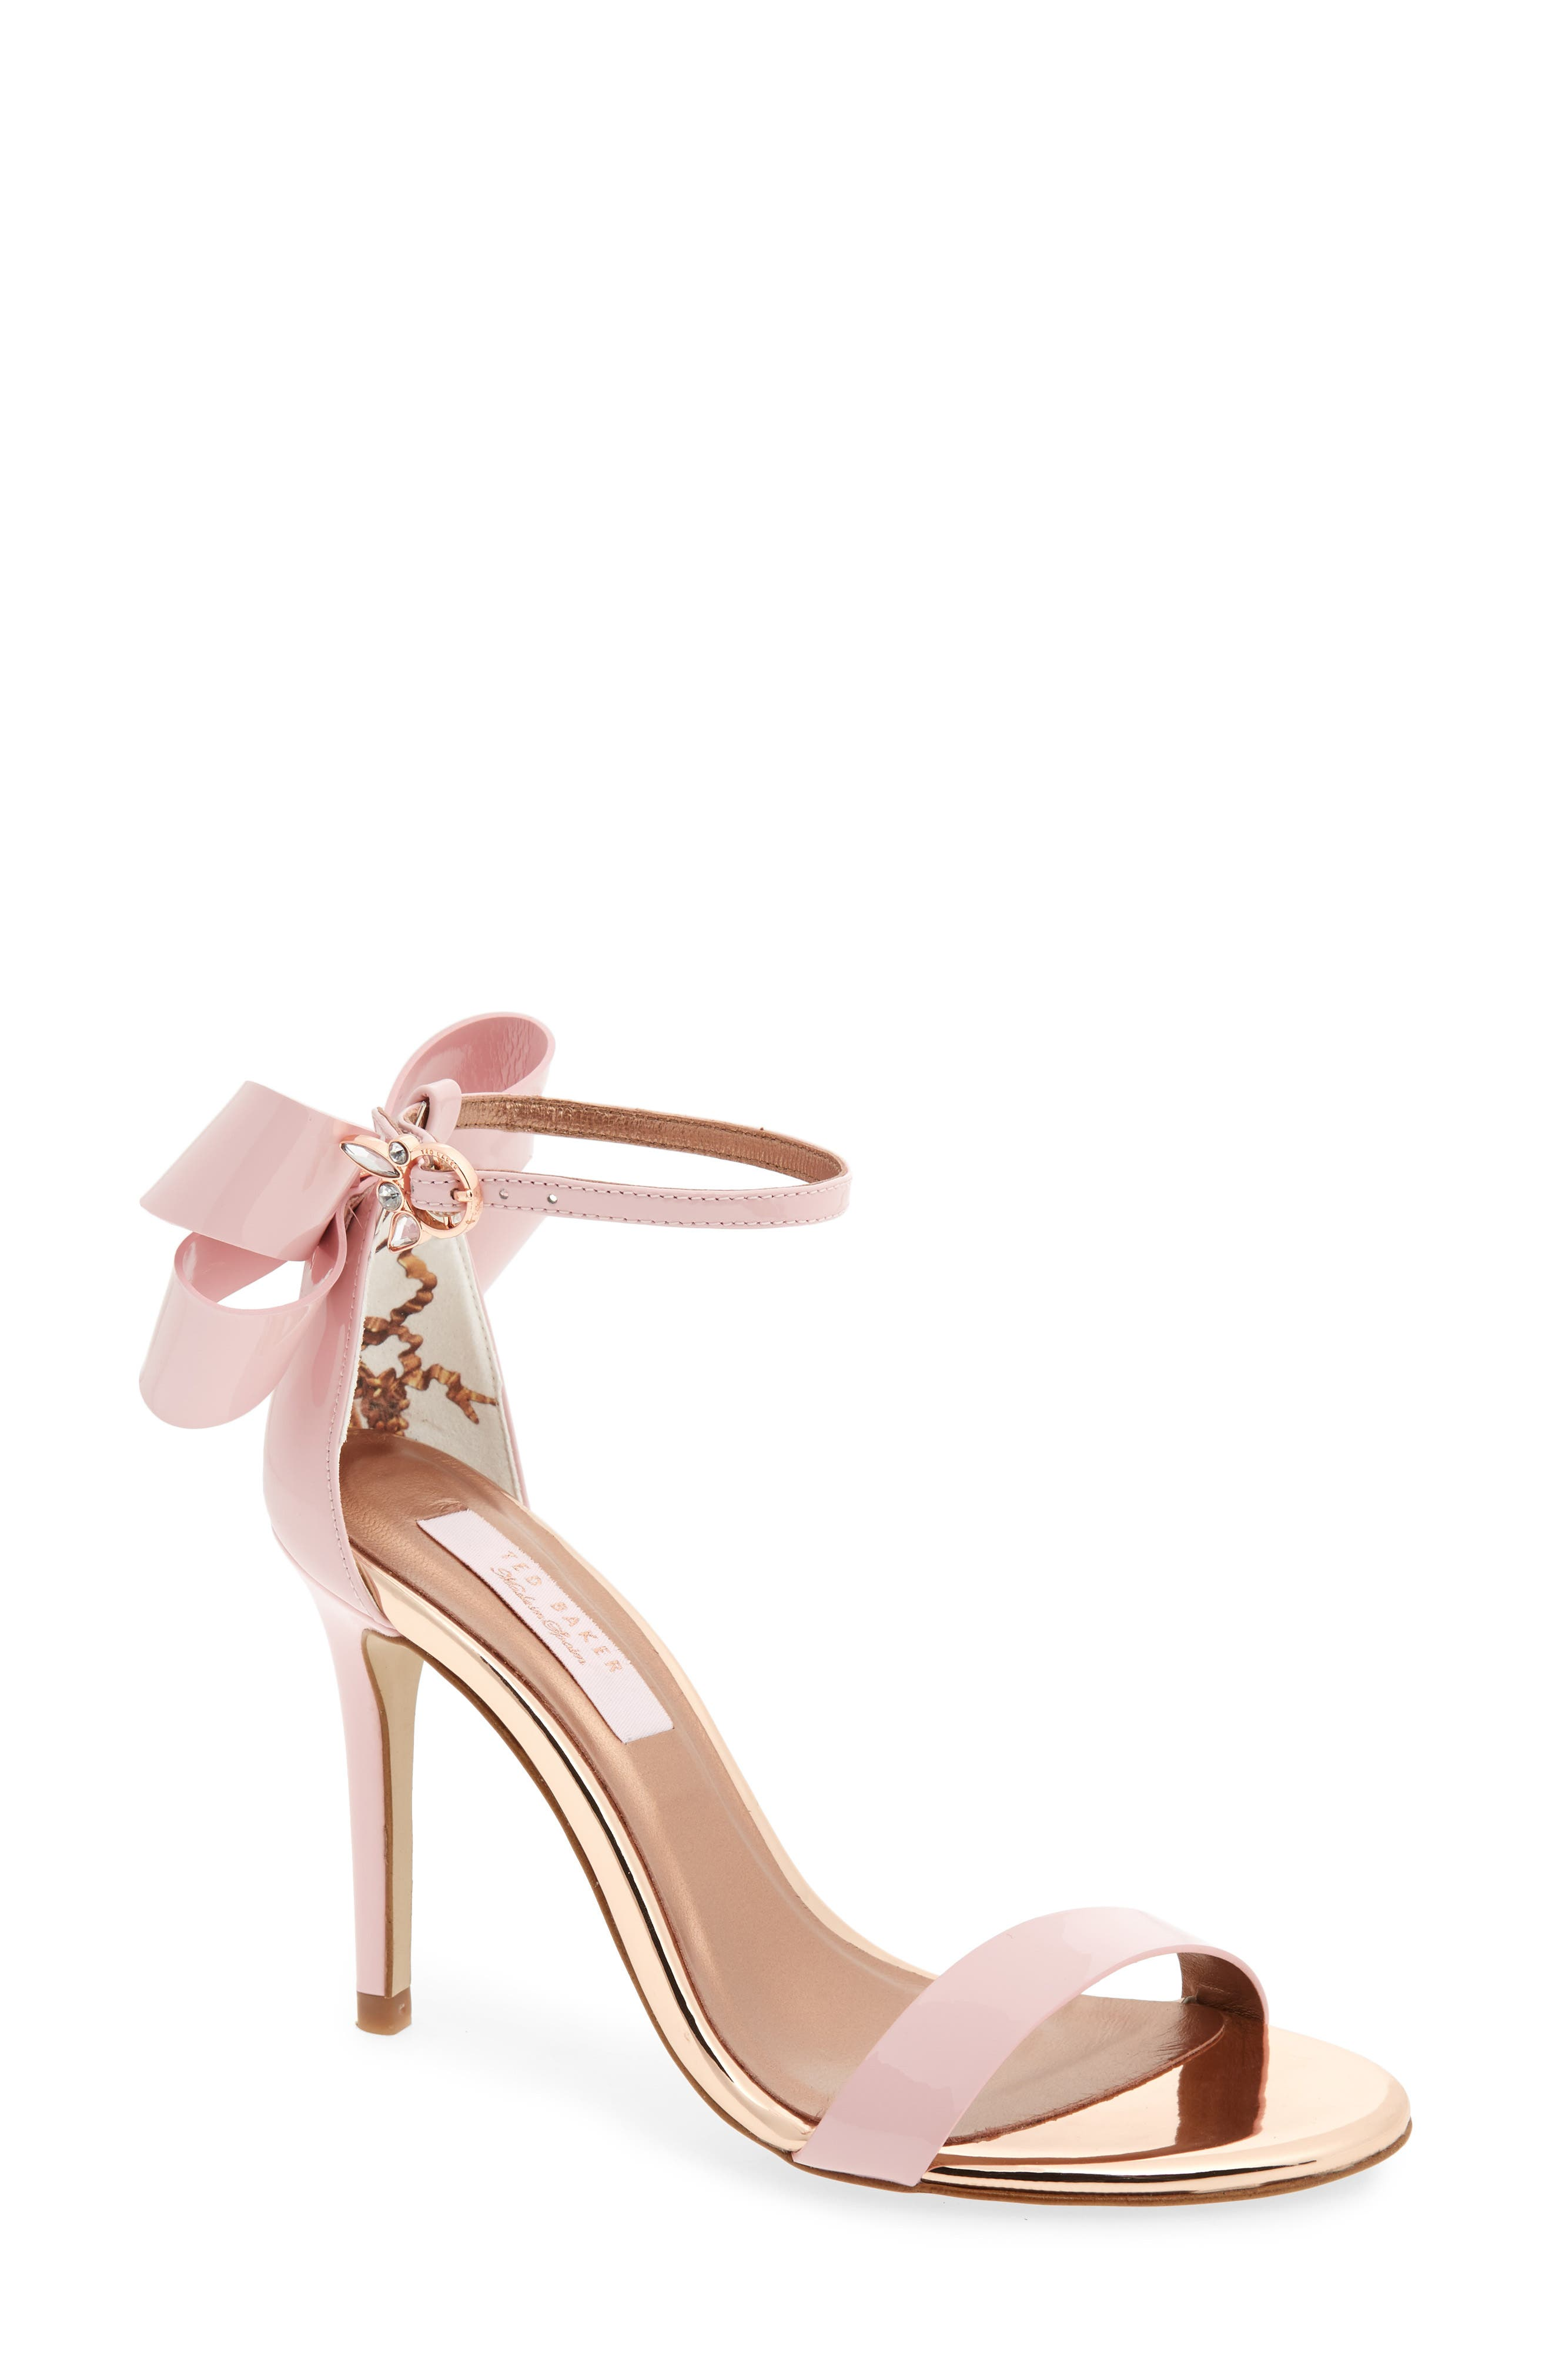 Ted Baker London Sandalo Sandal (Women)